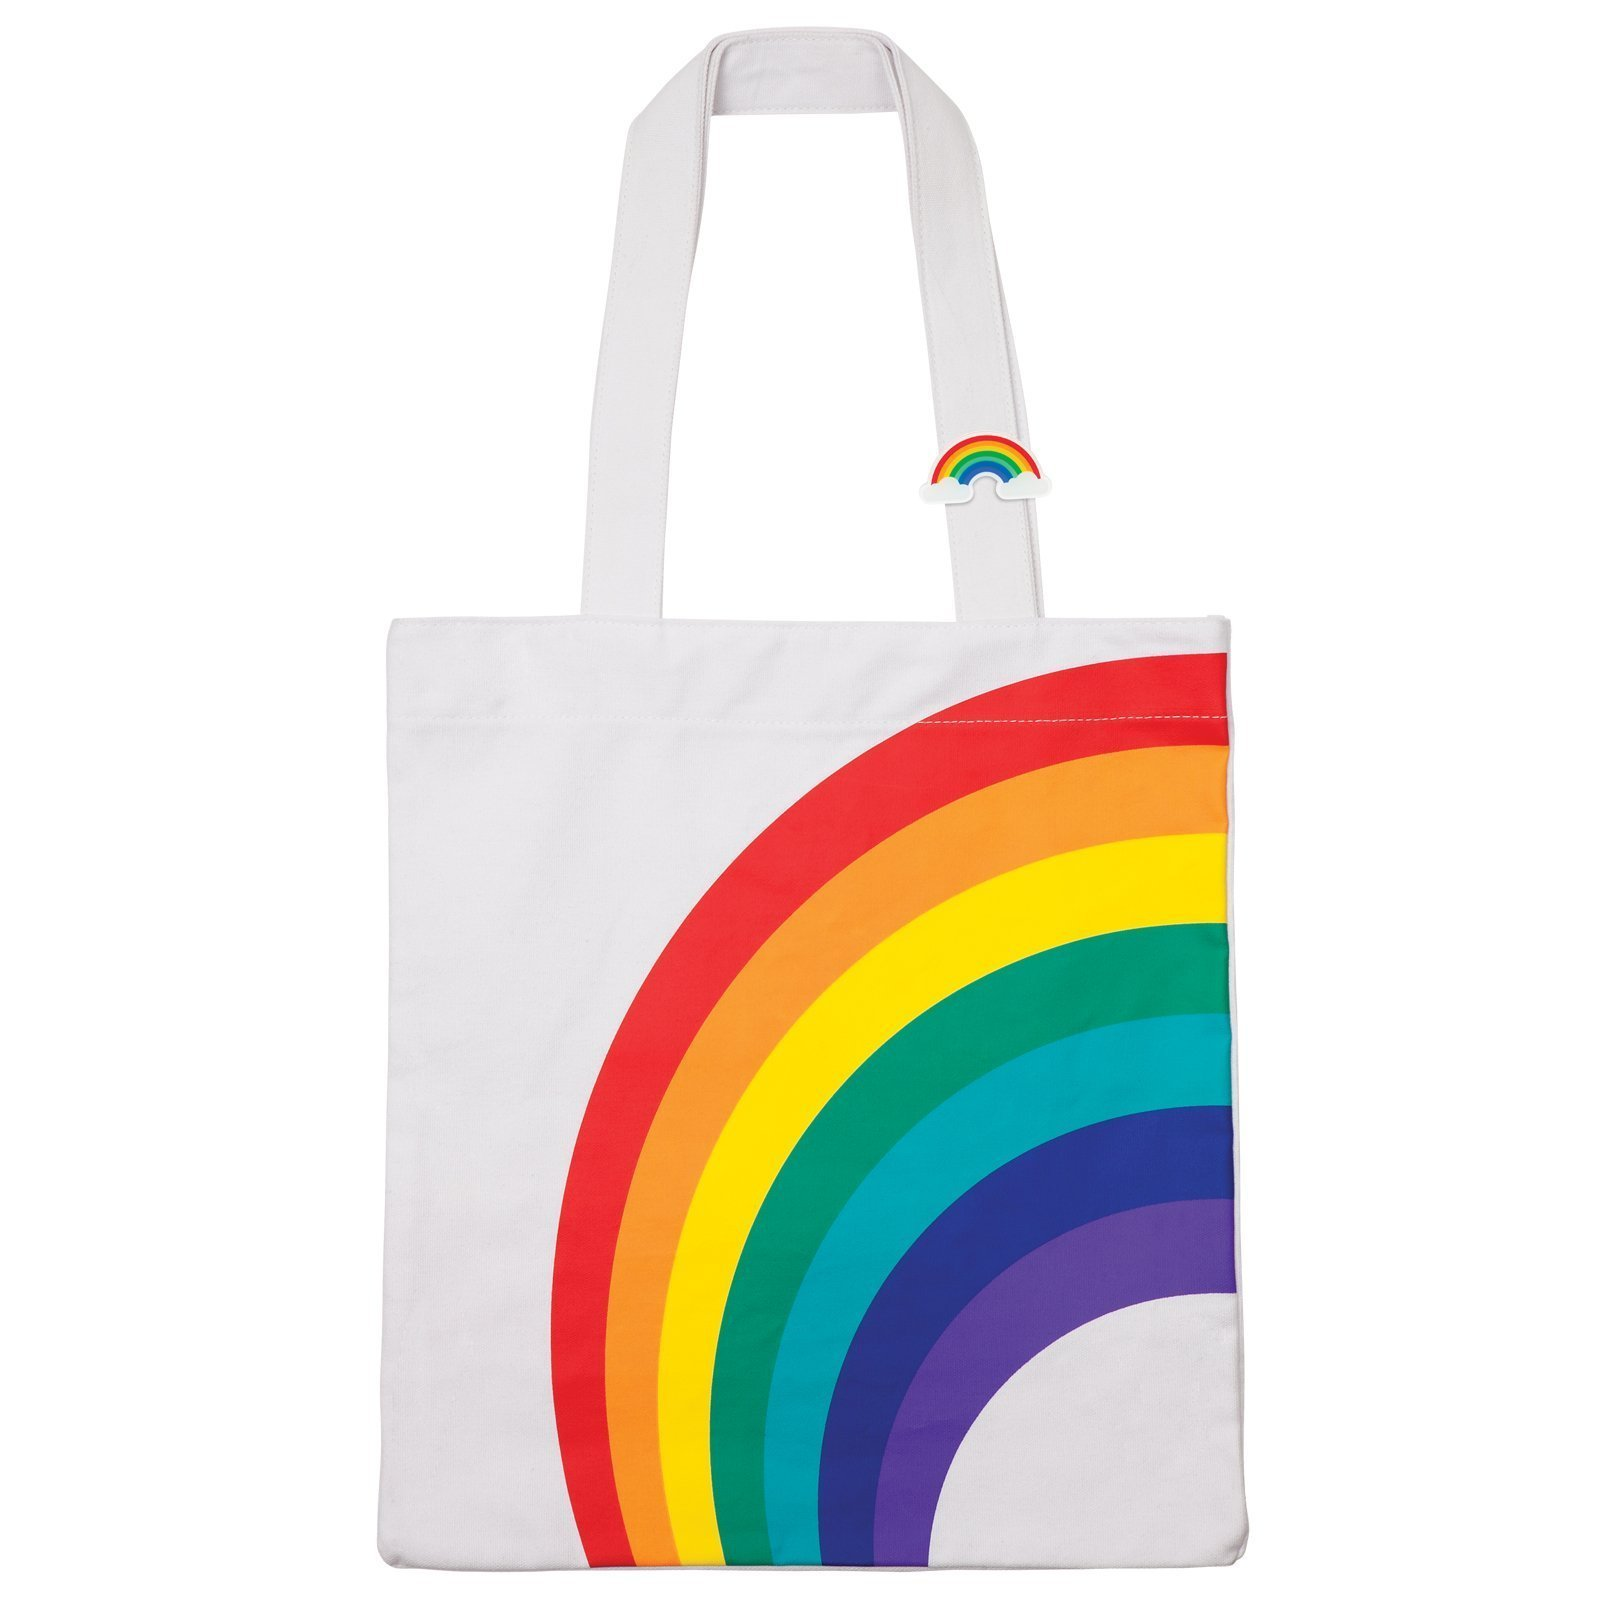 Sunnylife Cotton Canvas Open Tote Beach Bag Carry All - Rainbow White